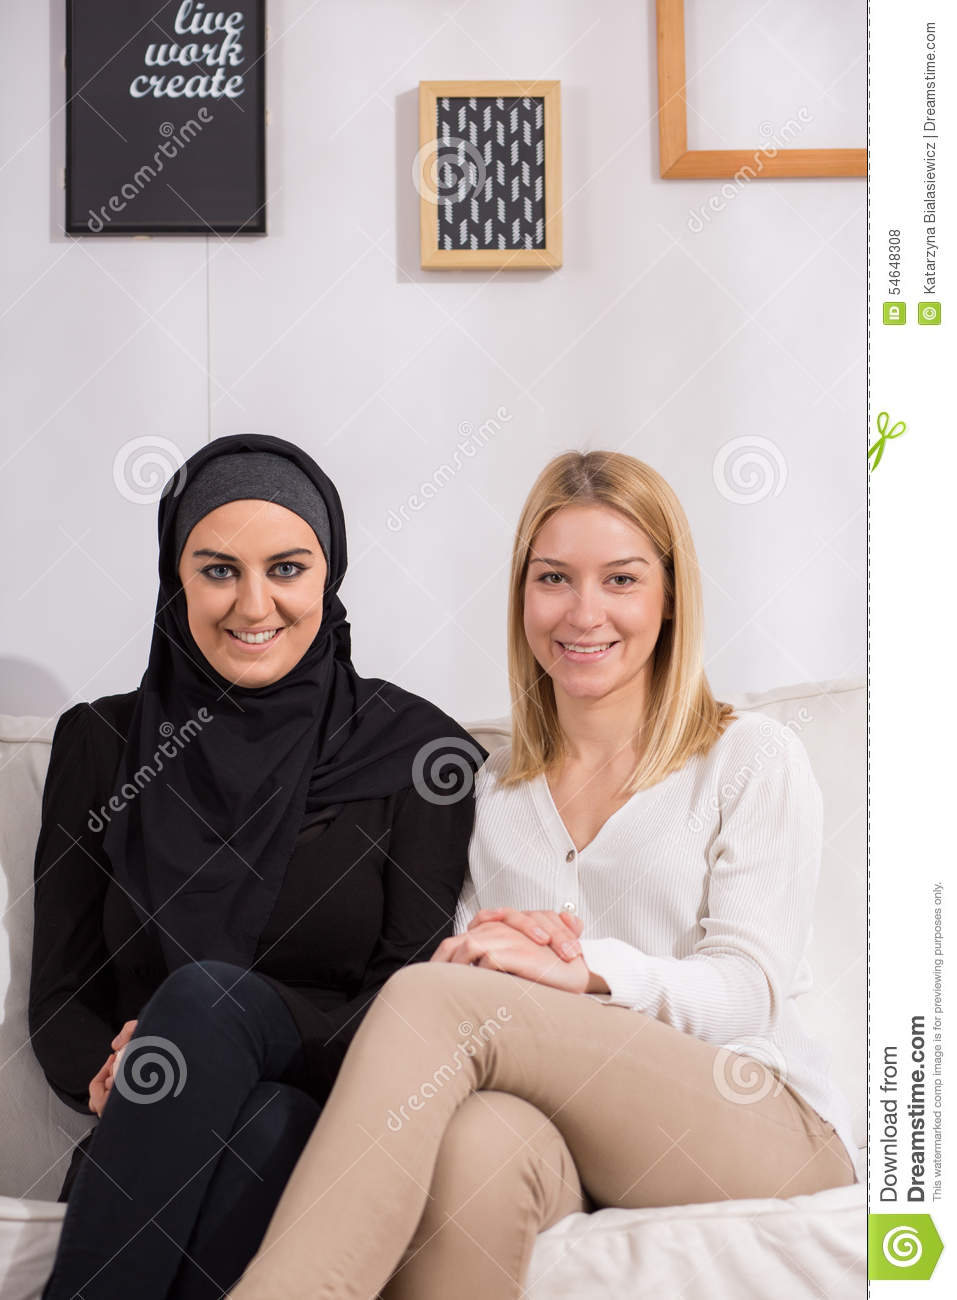 muslim dating a christian girl Bill gates daughter is dating a muslim guy these include in particular muslim women with jewish, christian, hindu, jain and men of other faiths.